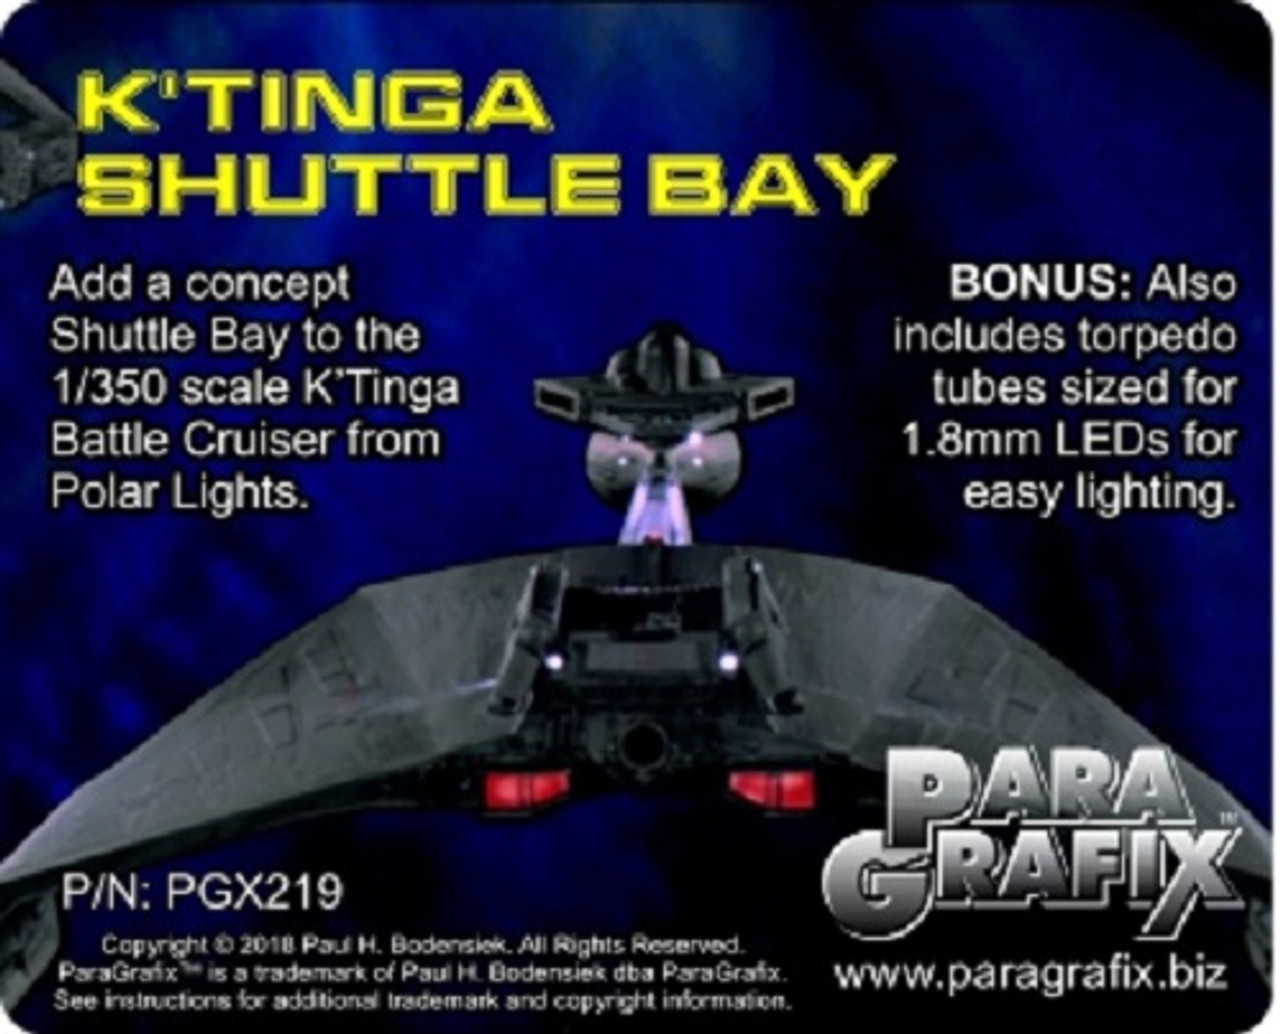 Paragrafix PGX219 1:350 K'Tinga Shuttle Bay Photoetch Set